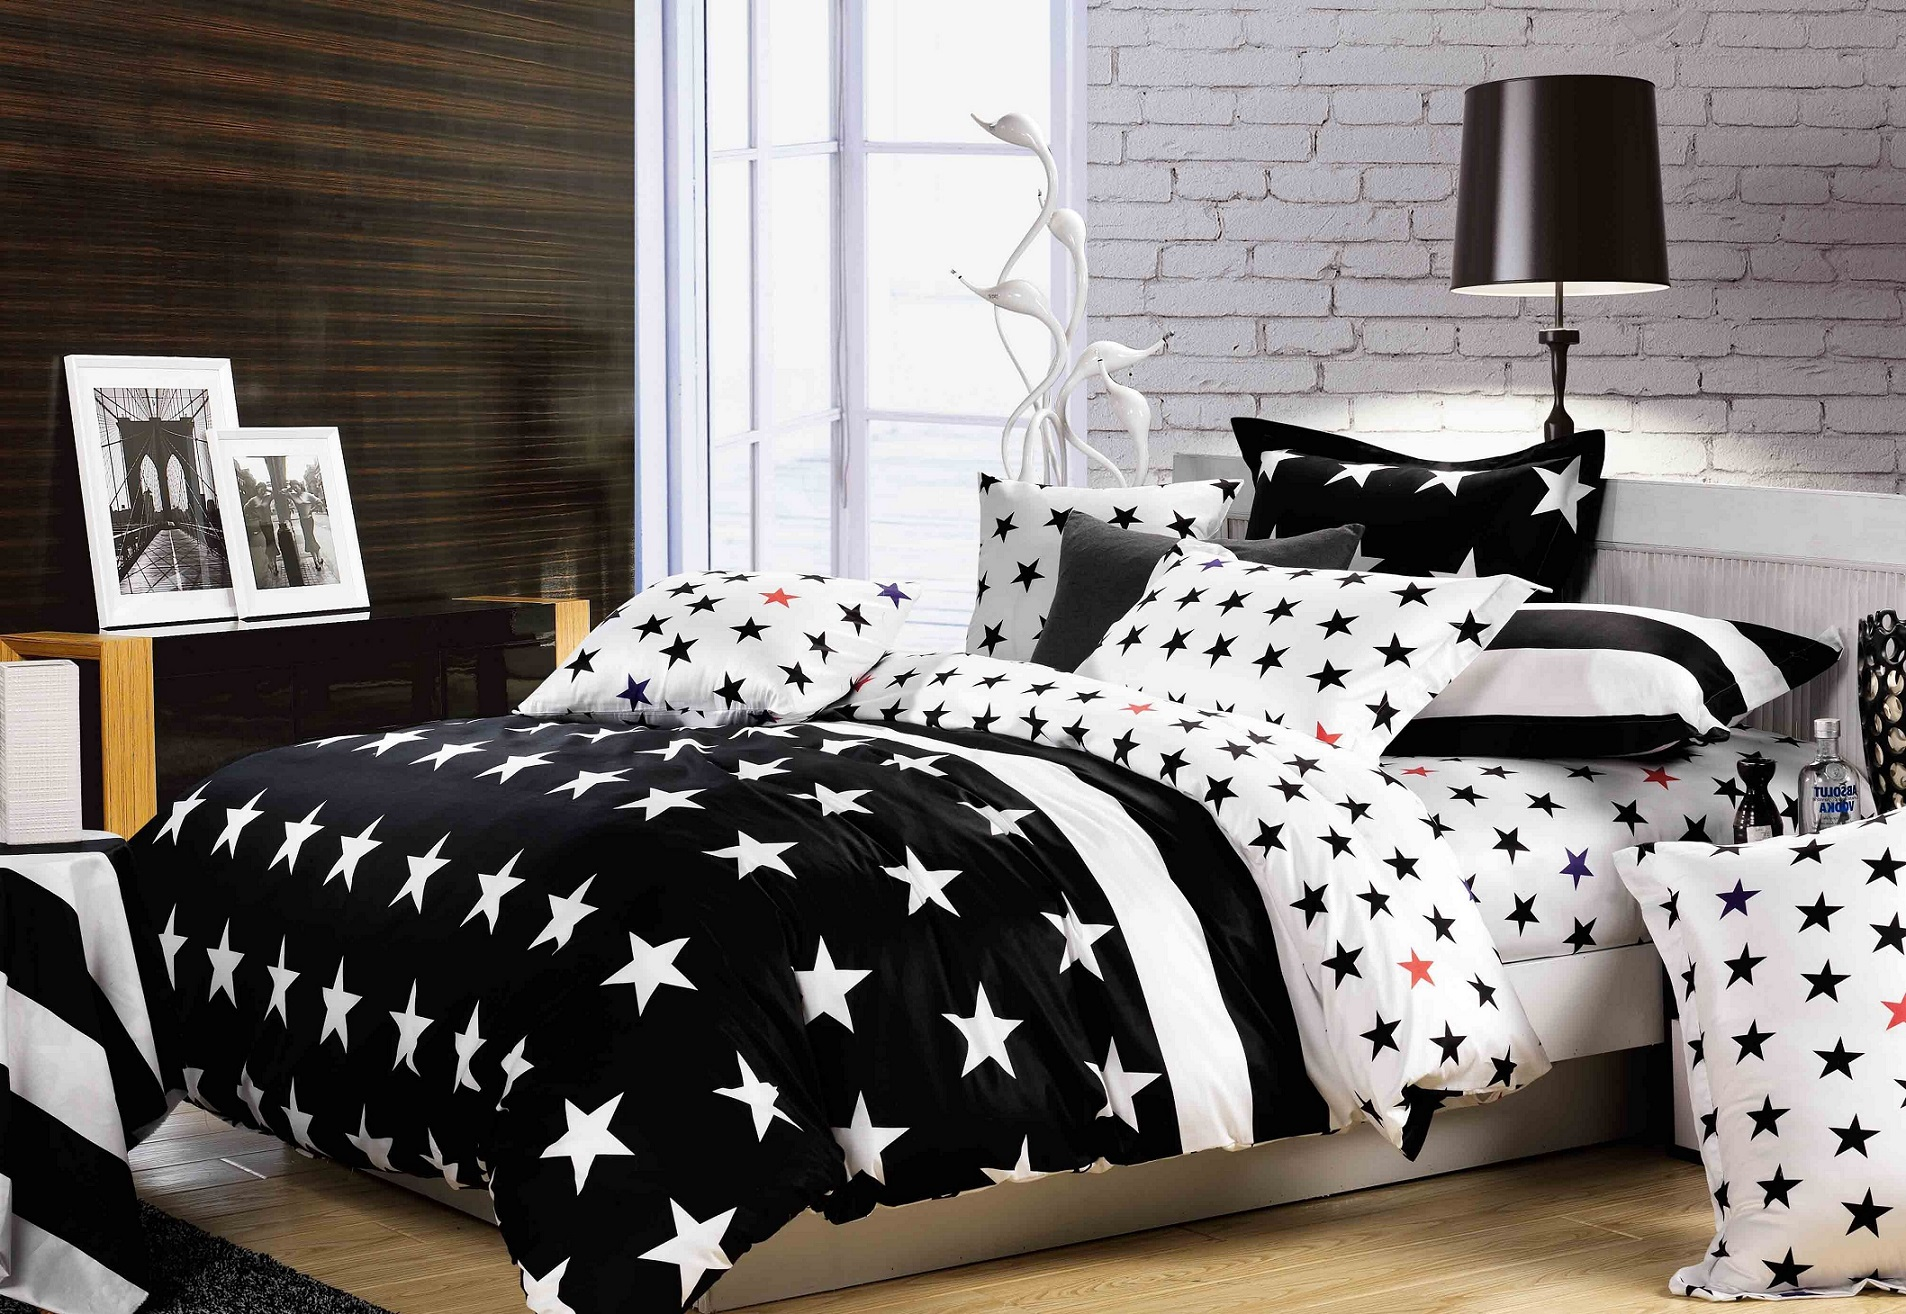 Image of: Black and white bedding Sets